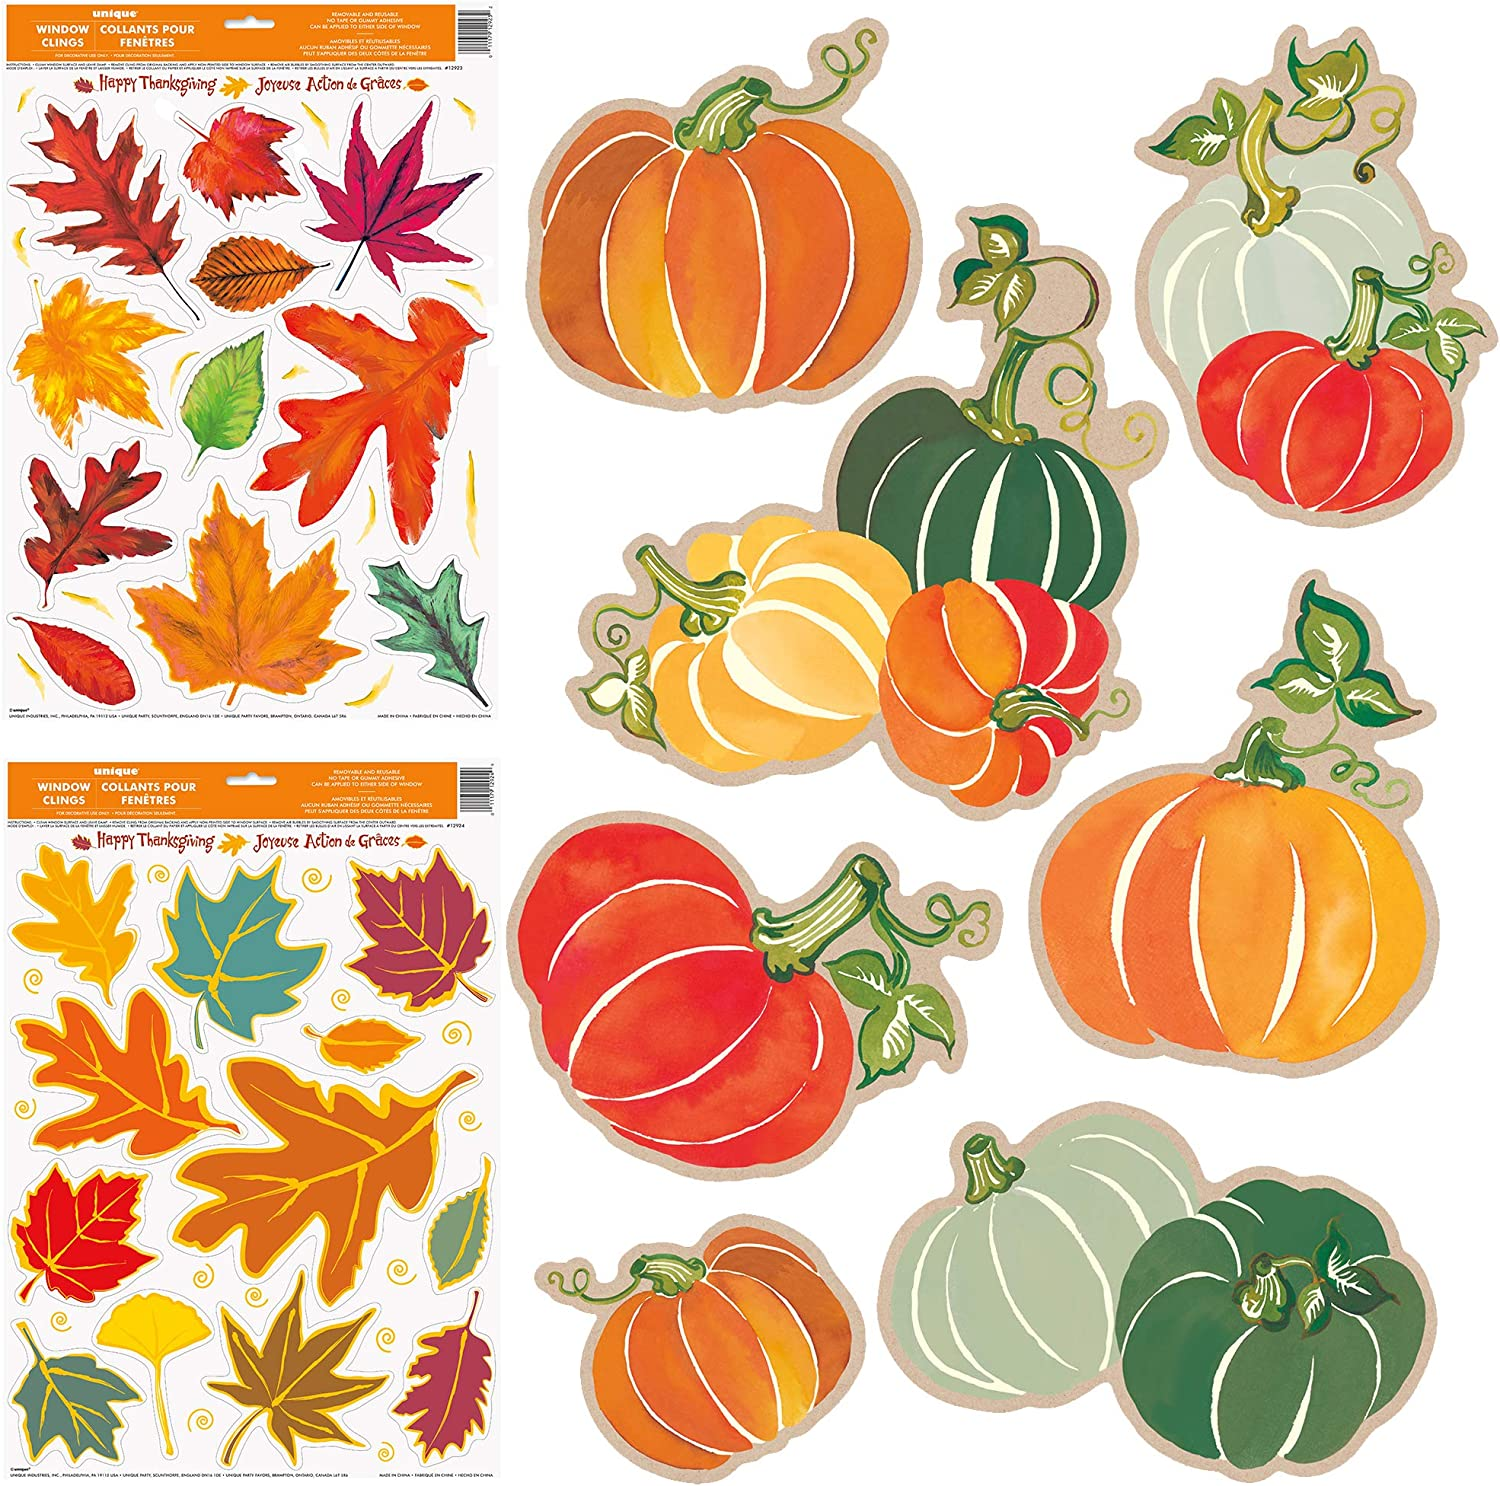 Unique Fall Window Clings Bundle | Leaves & Pumpkins | Fall House School Office Decorations